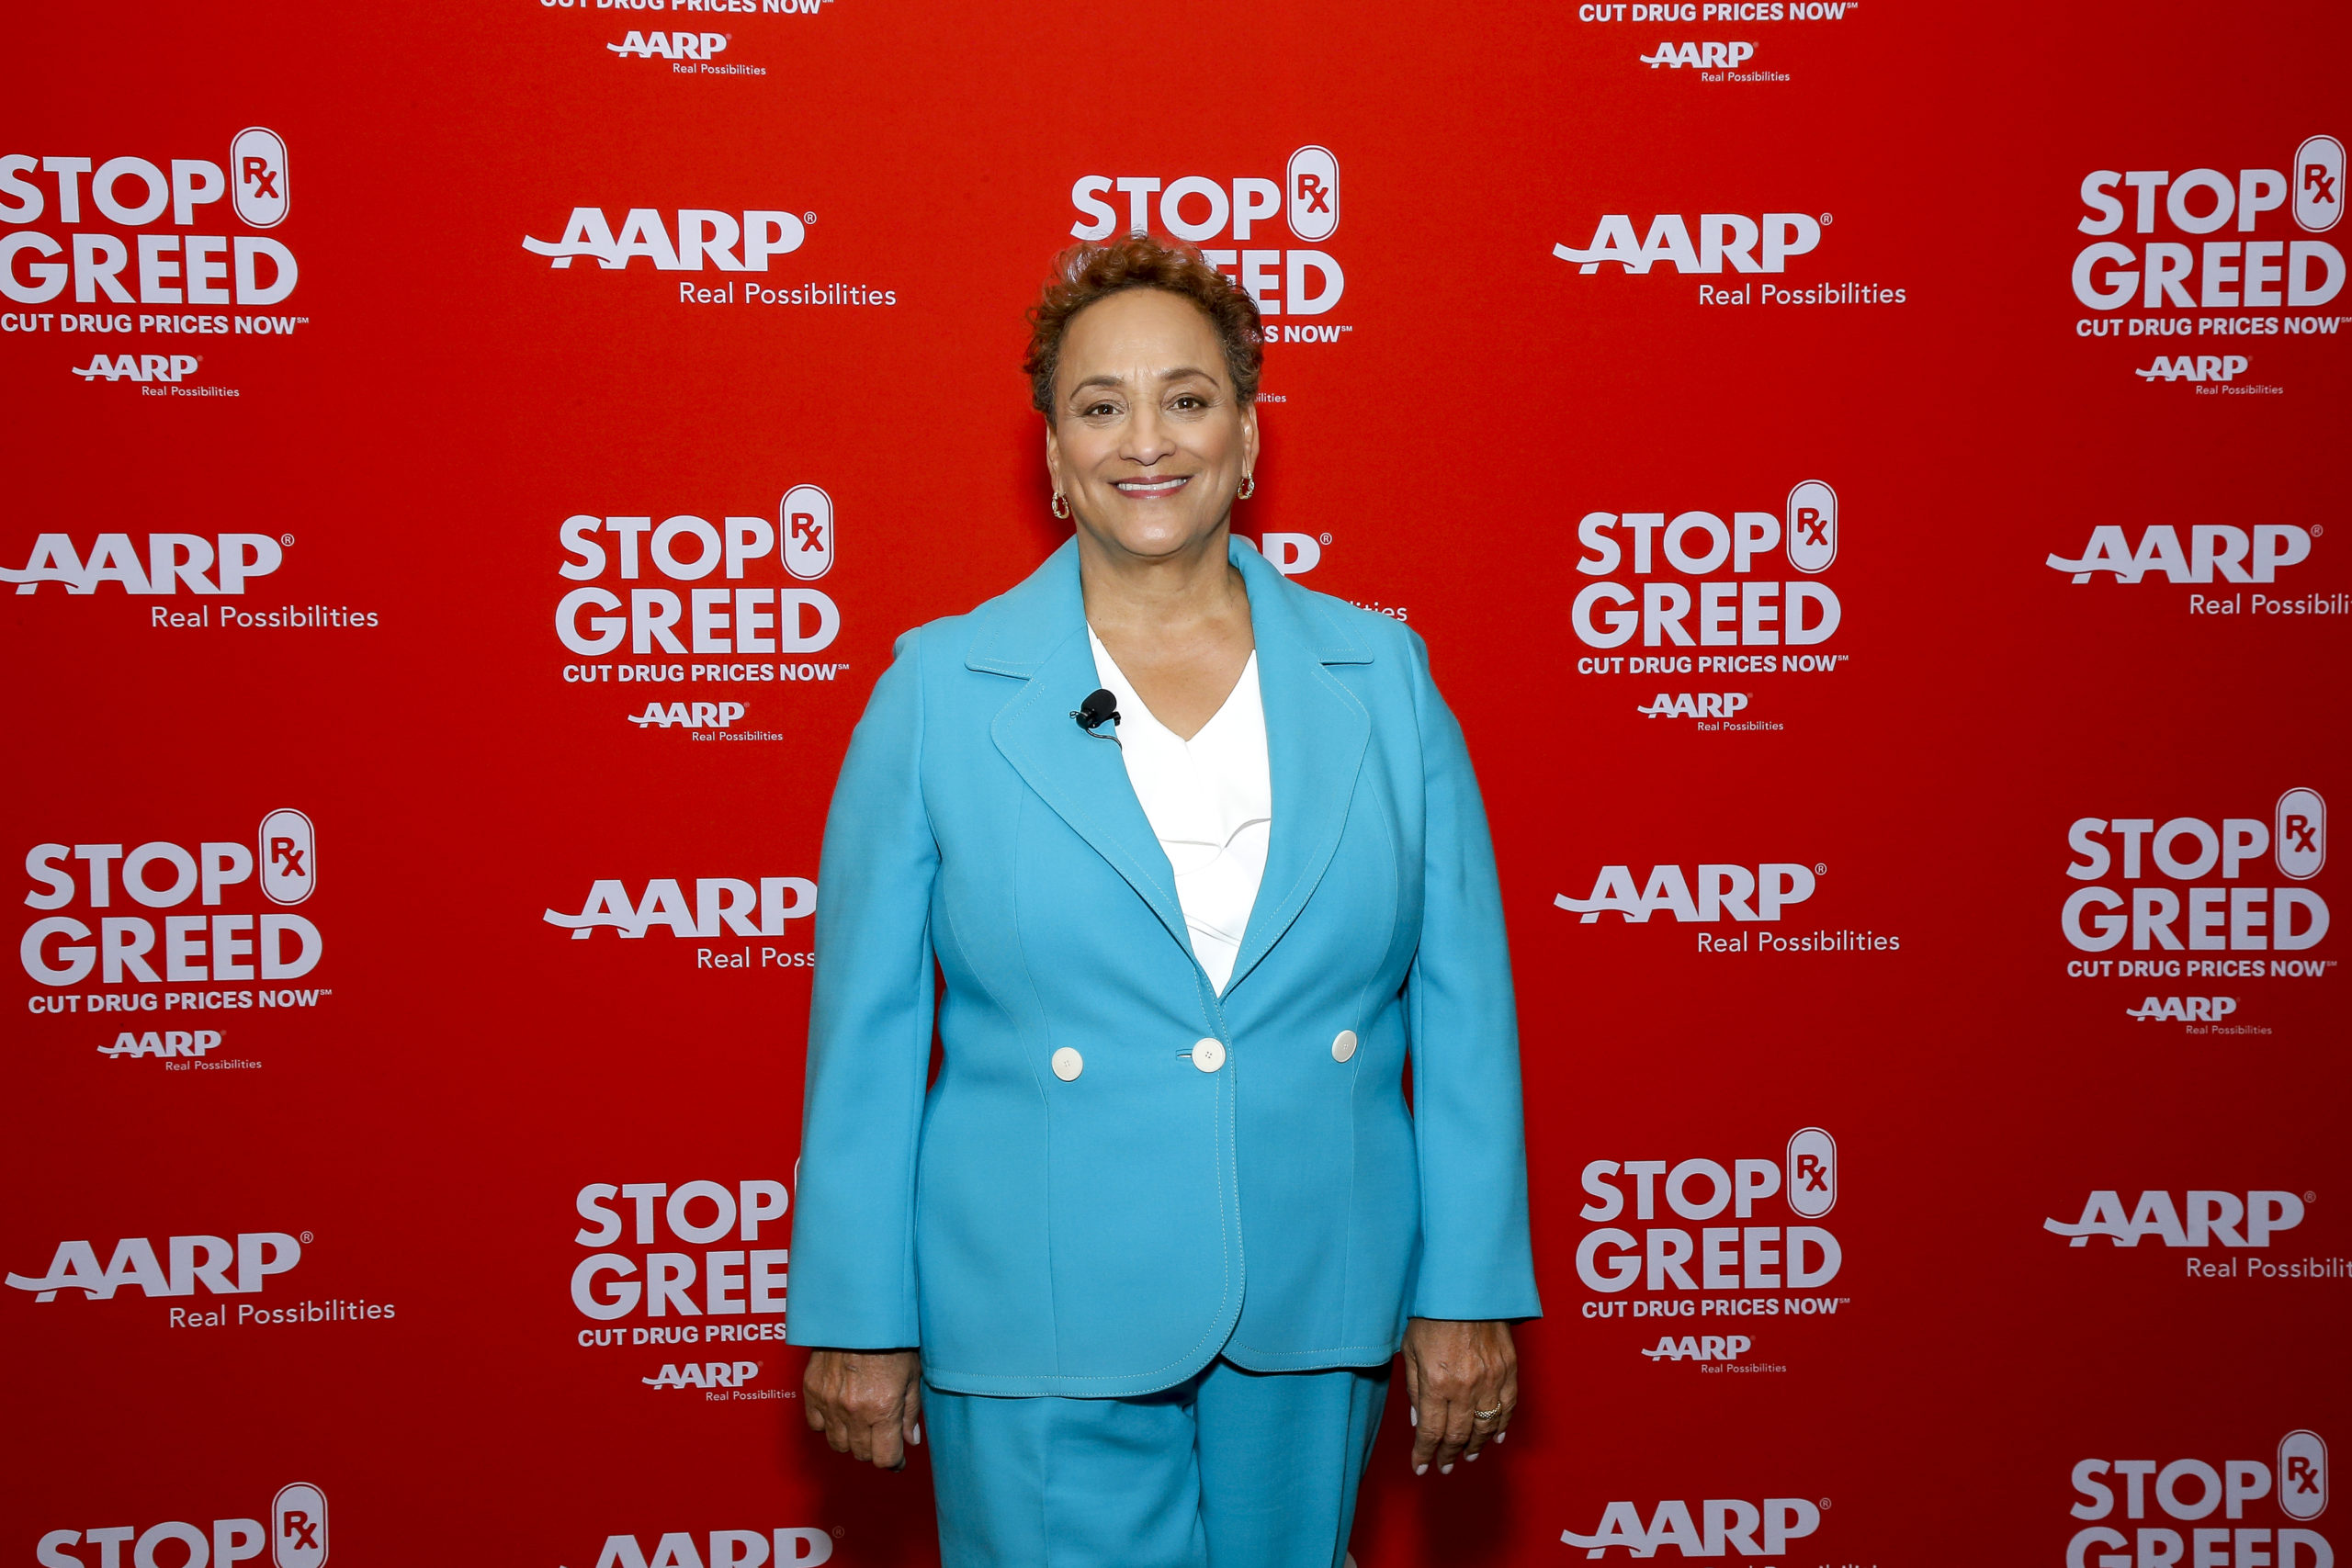 AARP CEO Jo Ann Jenkins poses before hosting the first of a series of town halls at Florida State University in 2019. (Don Juan Moore/Getty Images for AARP)